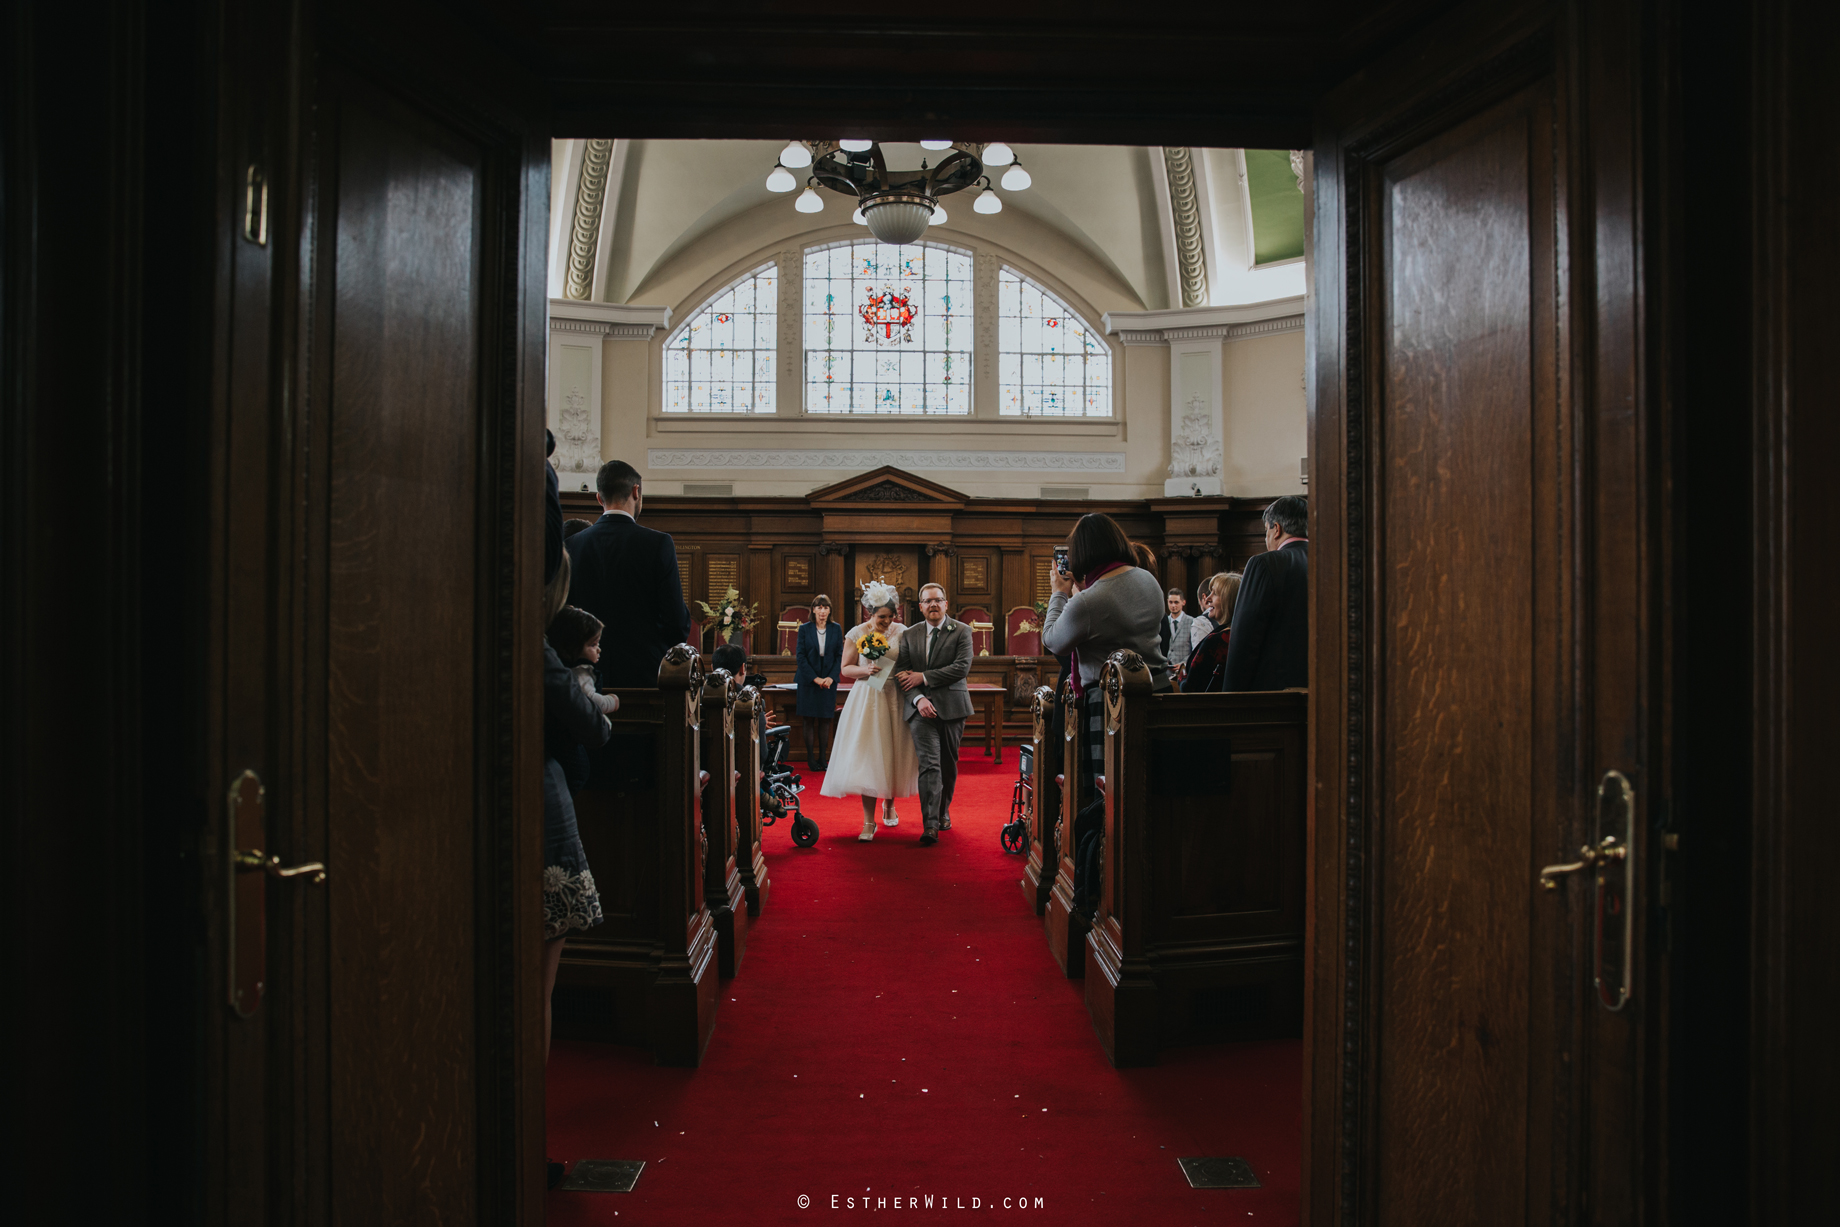 Islington_Town_Hall_Assembly_Hall_Council_Chamber_The_Star_Pub_London_Sacred_Wedding_Copyright_Esther_Wild_Photographer_IMG_0515.jpg